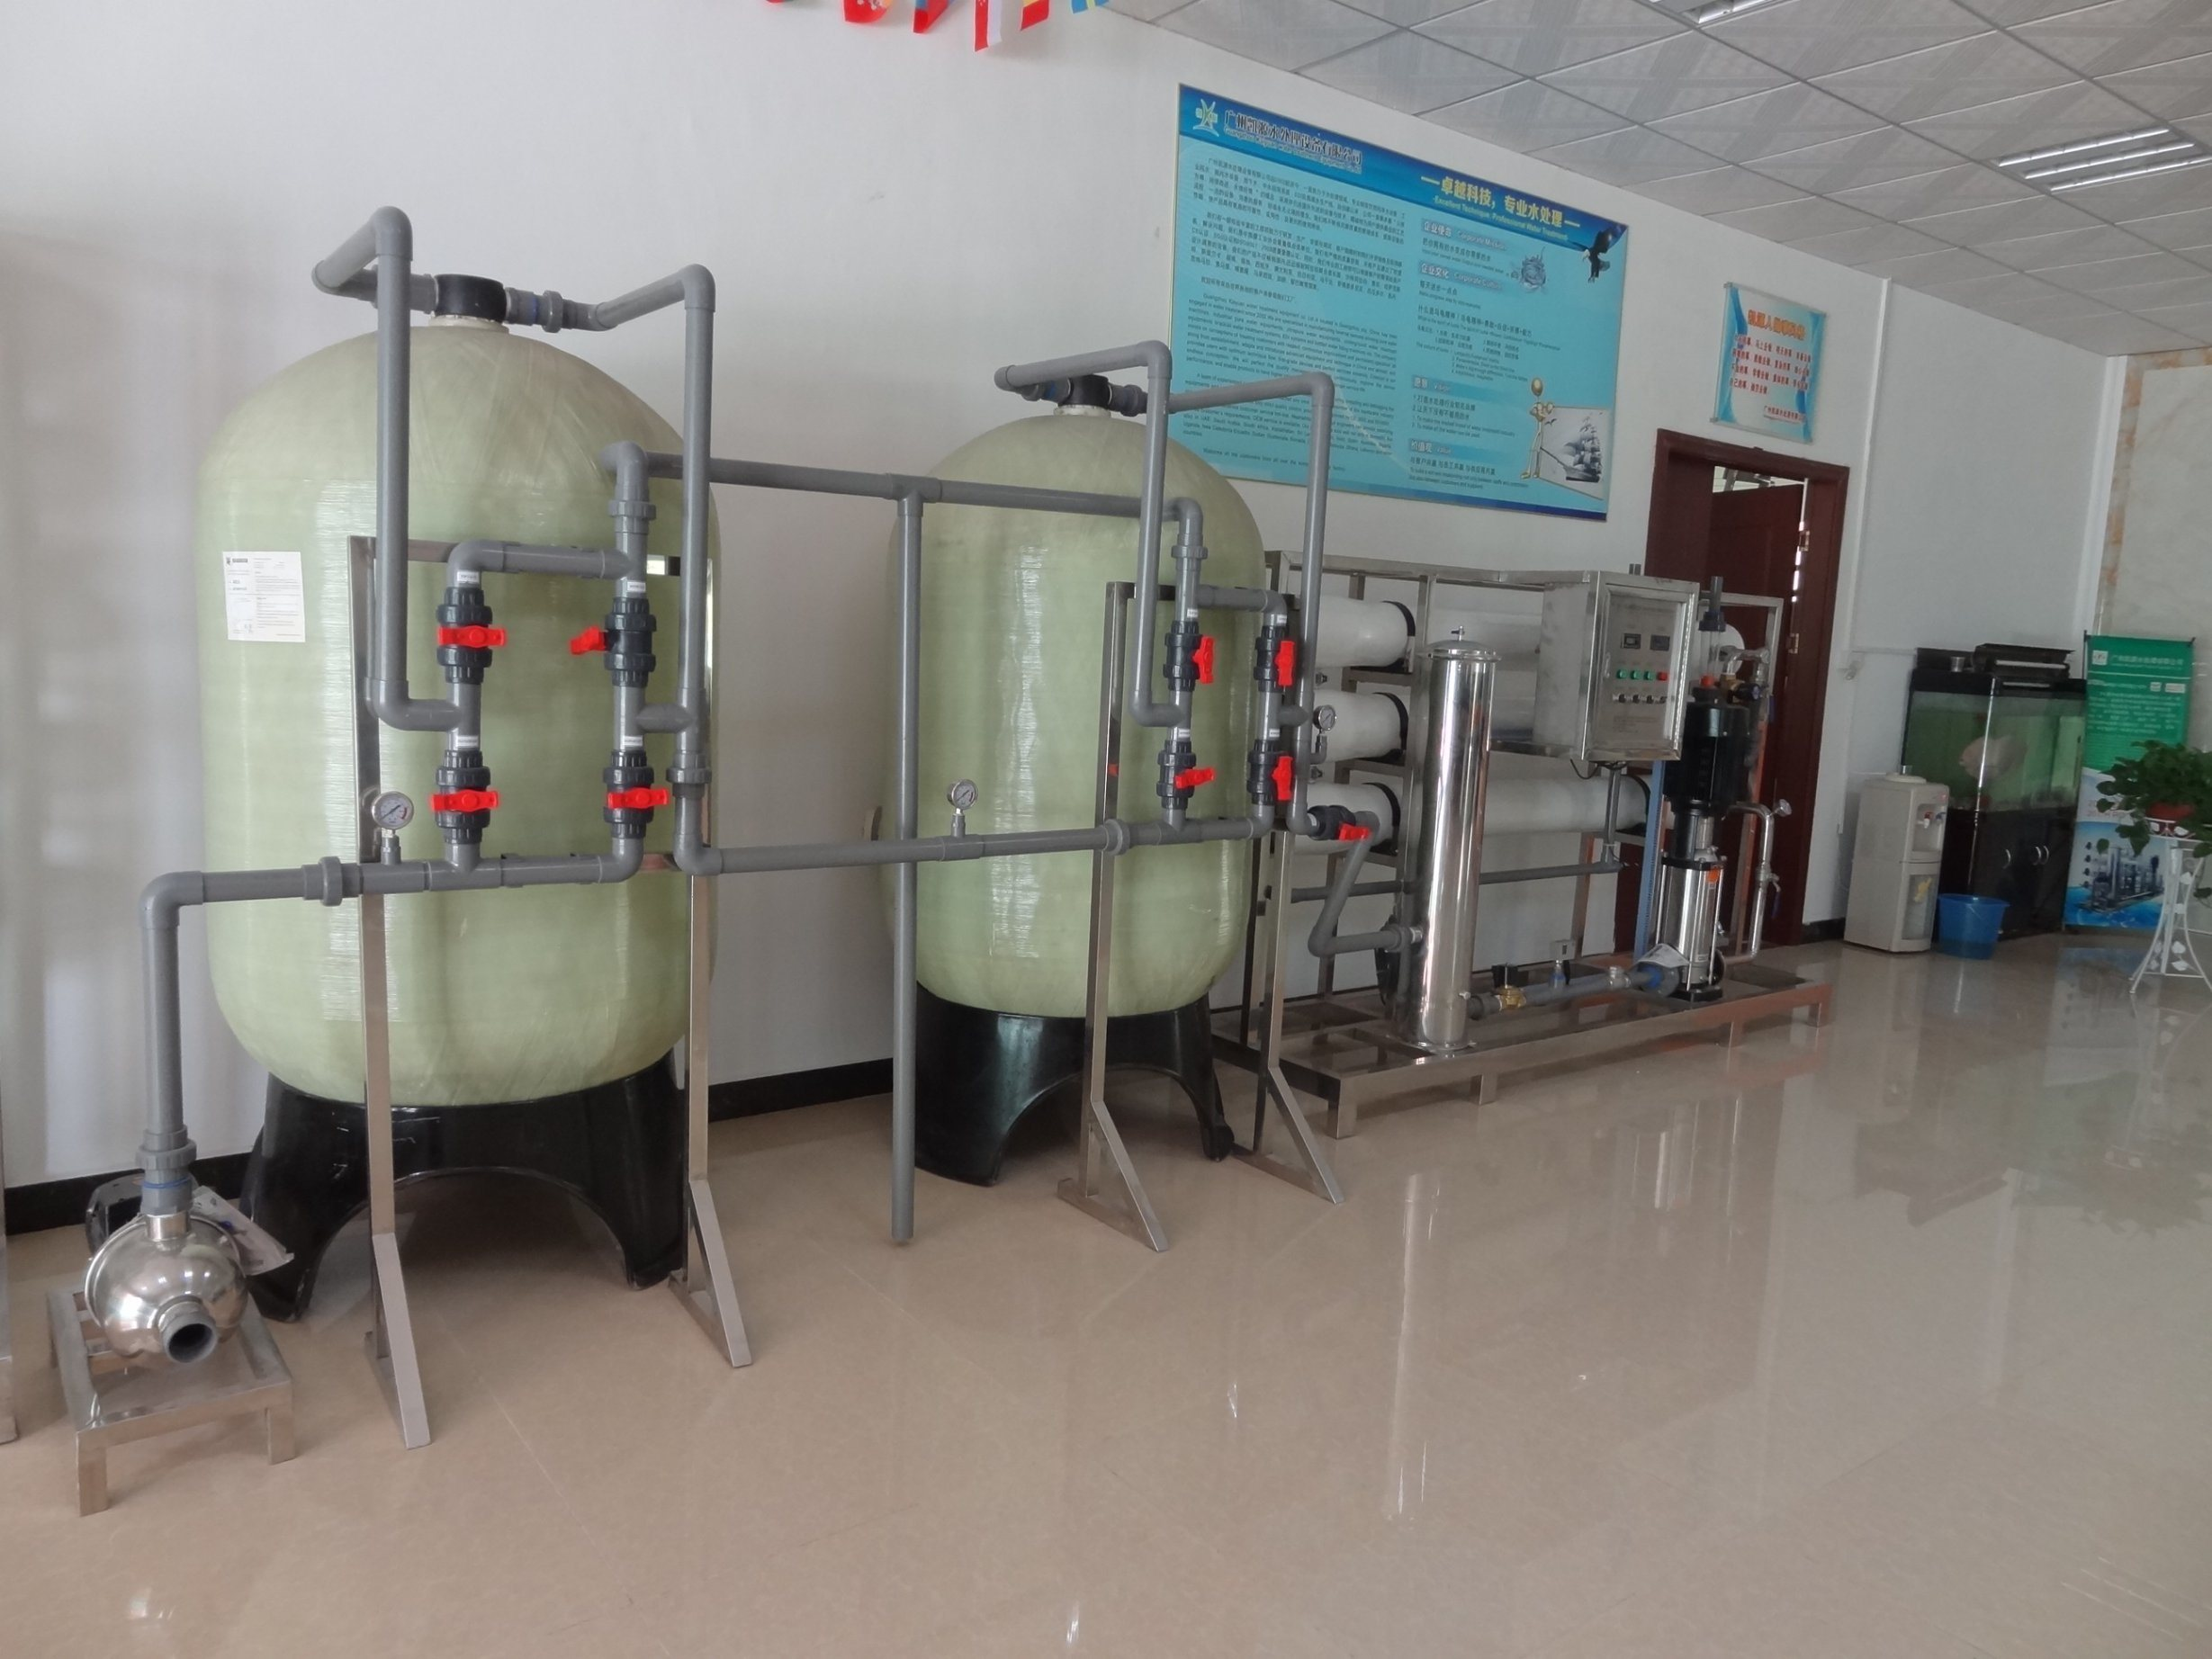 [Hot Item] Factory Cip System Industrial Reverse Osmosis Water Filtration